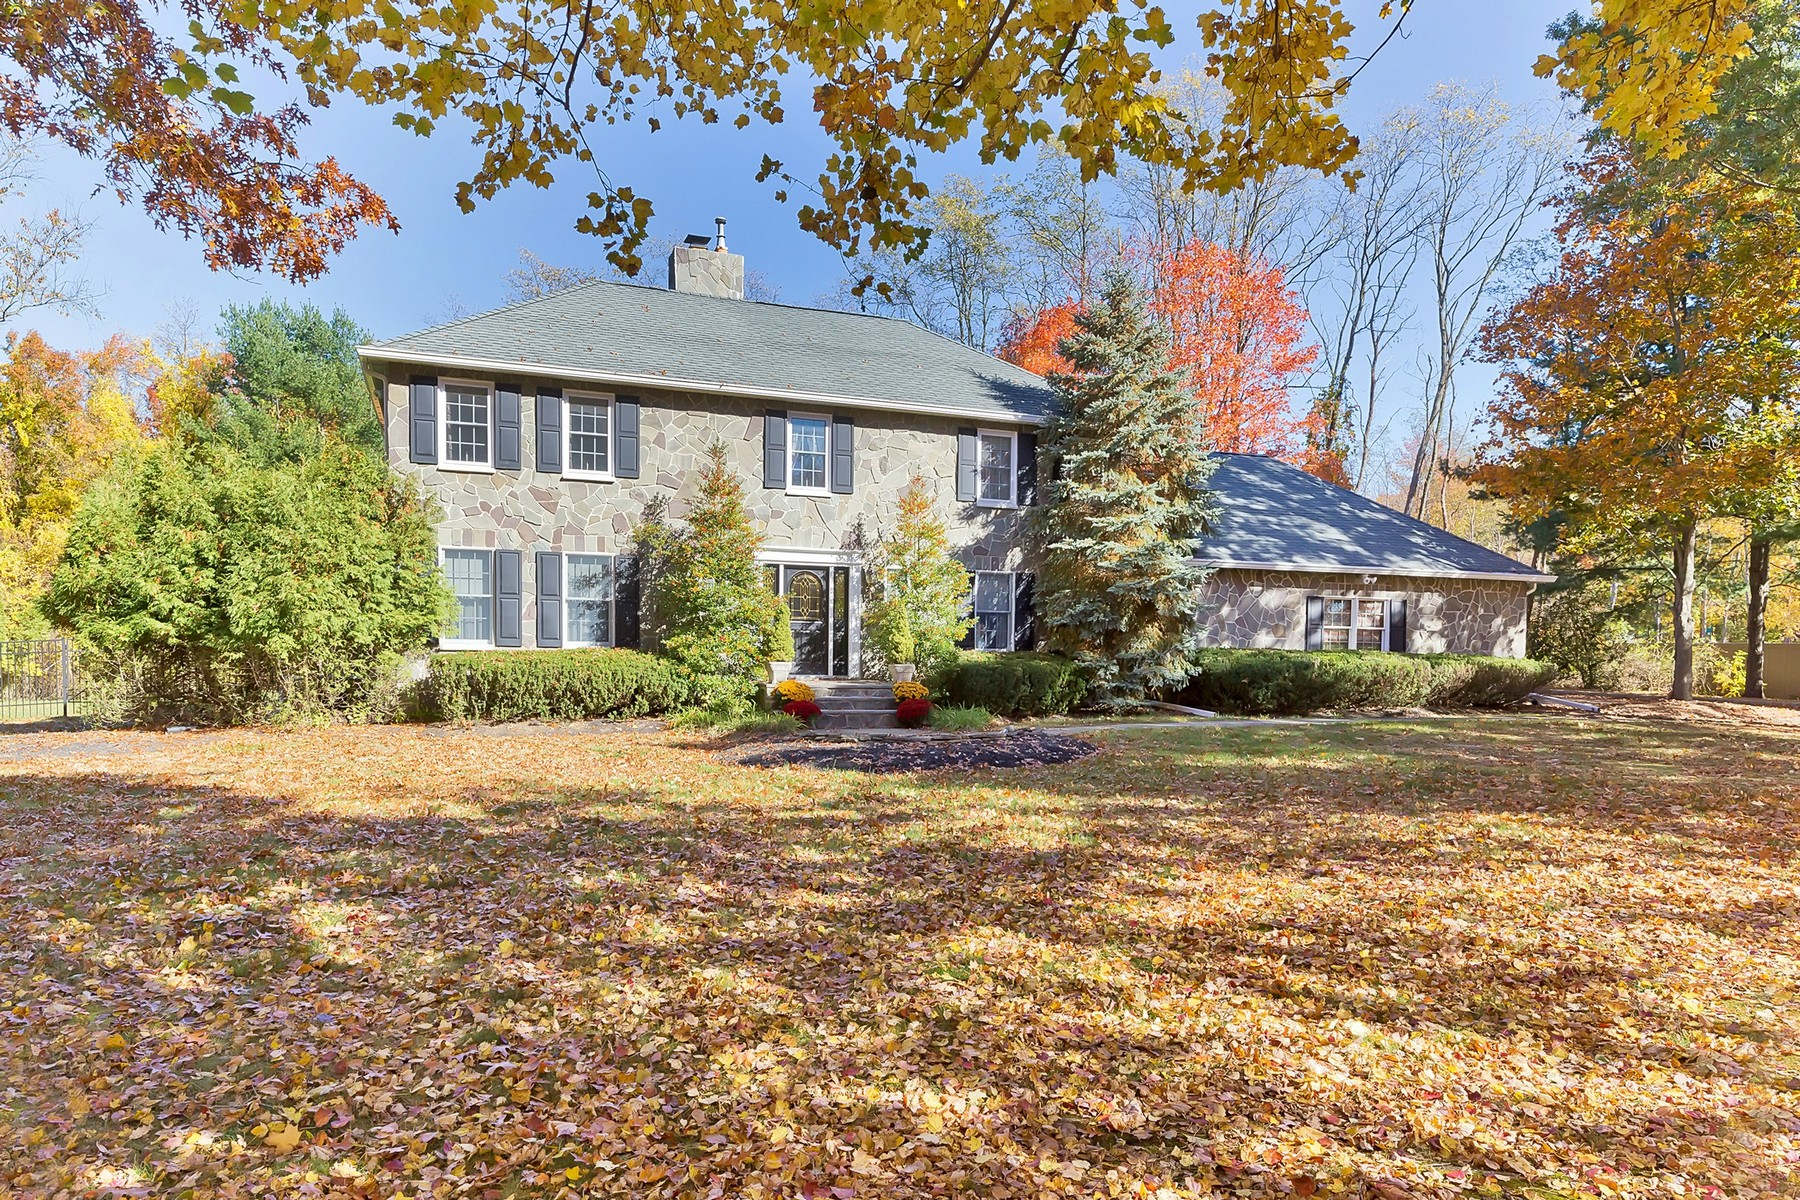 Single Family Home for Sale at Stately Traditional Colonial 7 Farmgate Drive Colts Neck, New Jersey 07722 United States